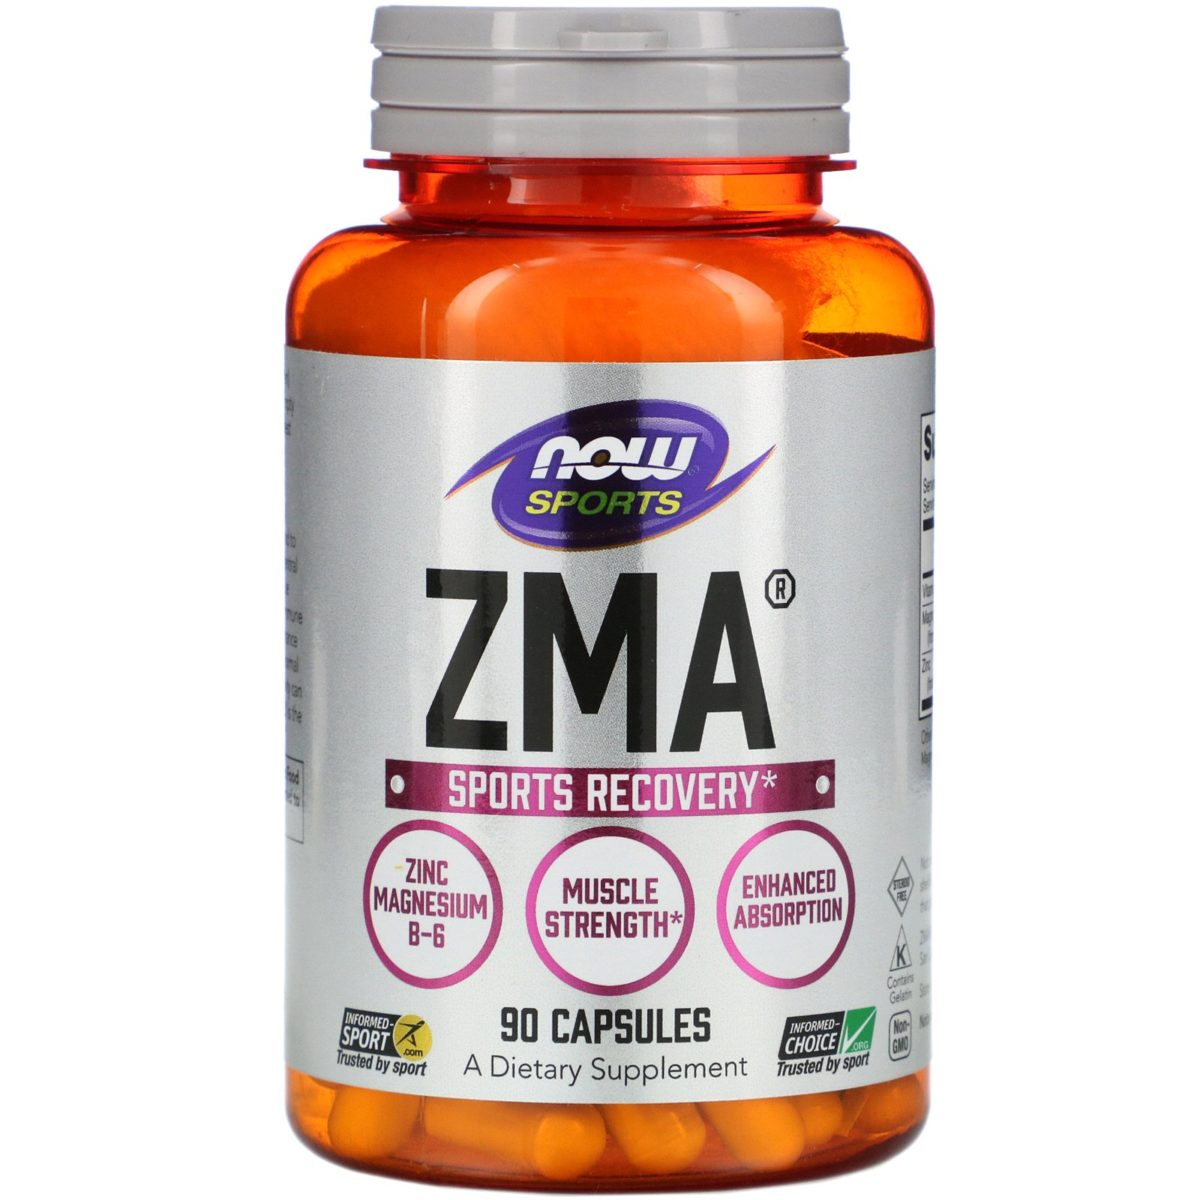 Now ZMA 90 Capsules – Supplement superstore India, Meerut, UP